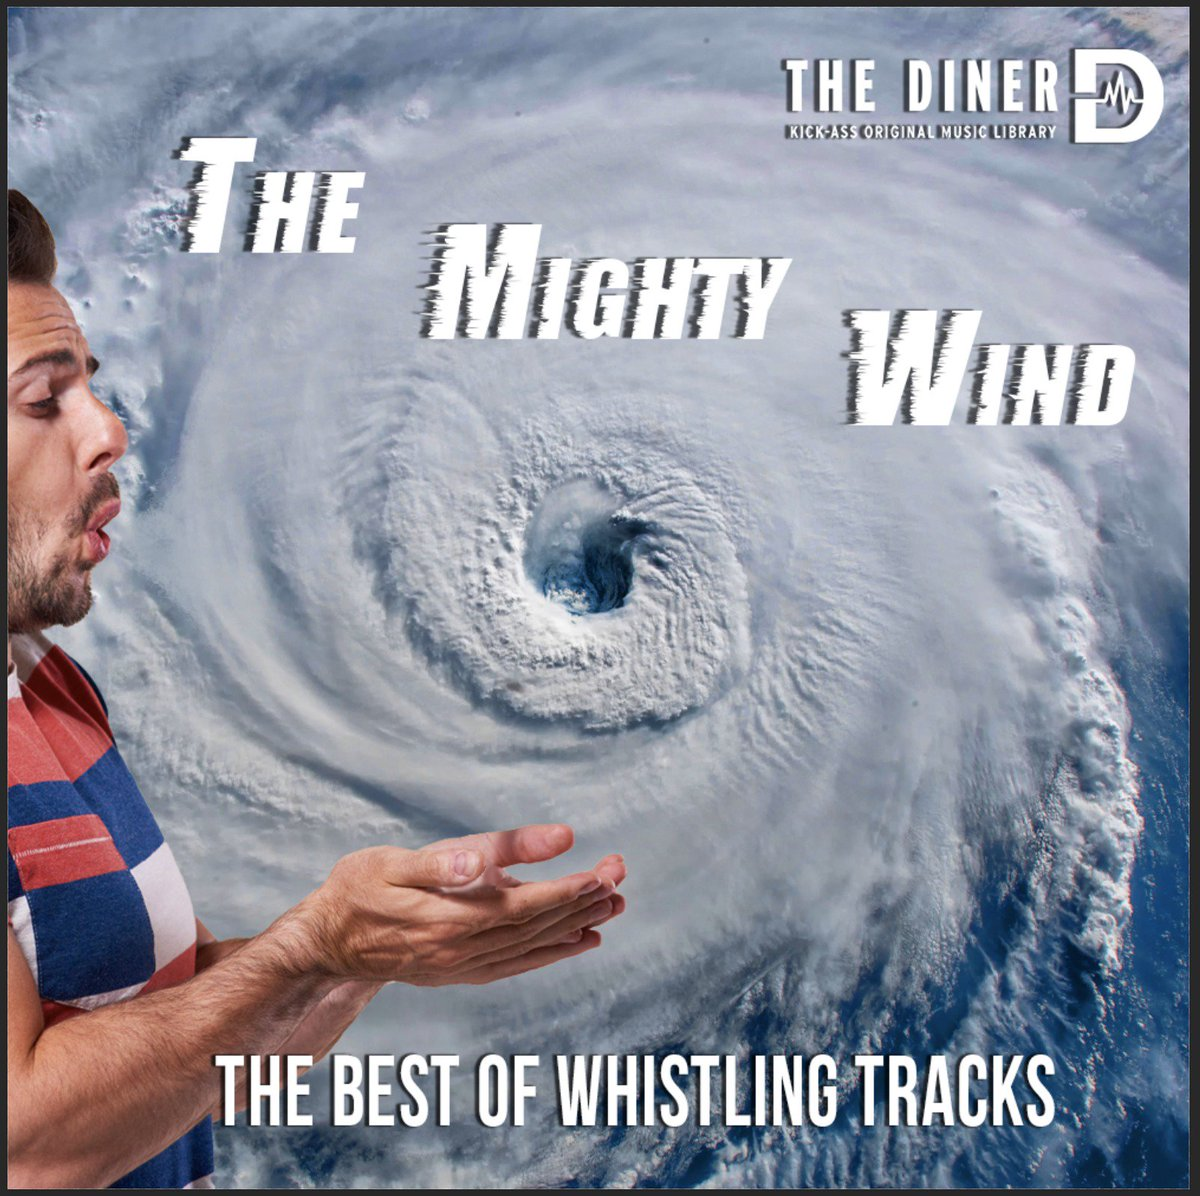 The Diner Music (@DinerMusic) | Twitter